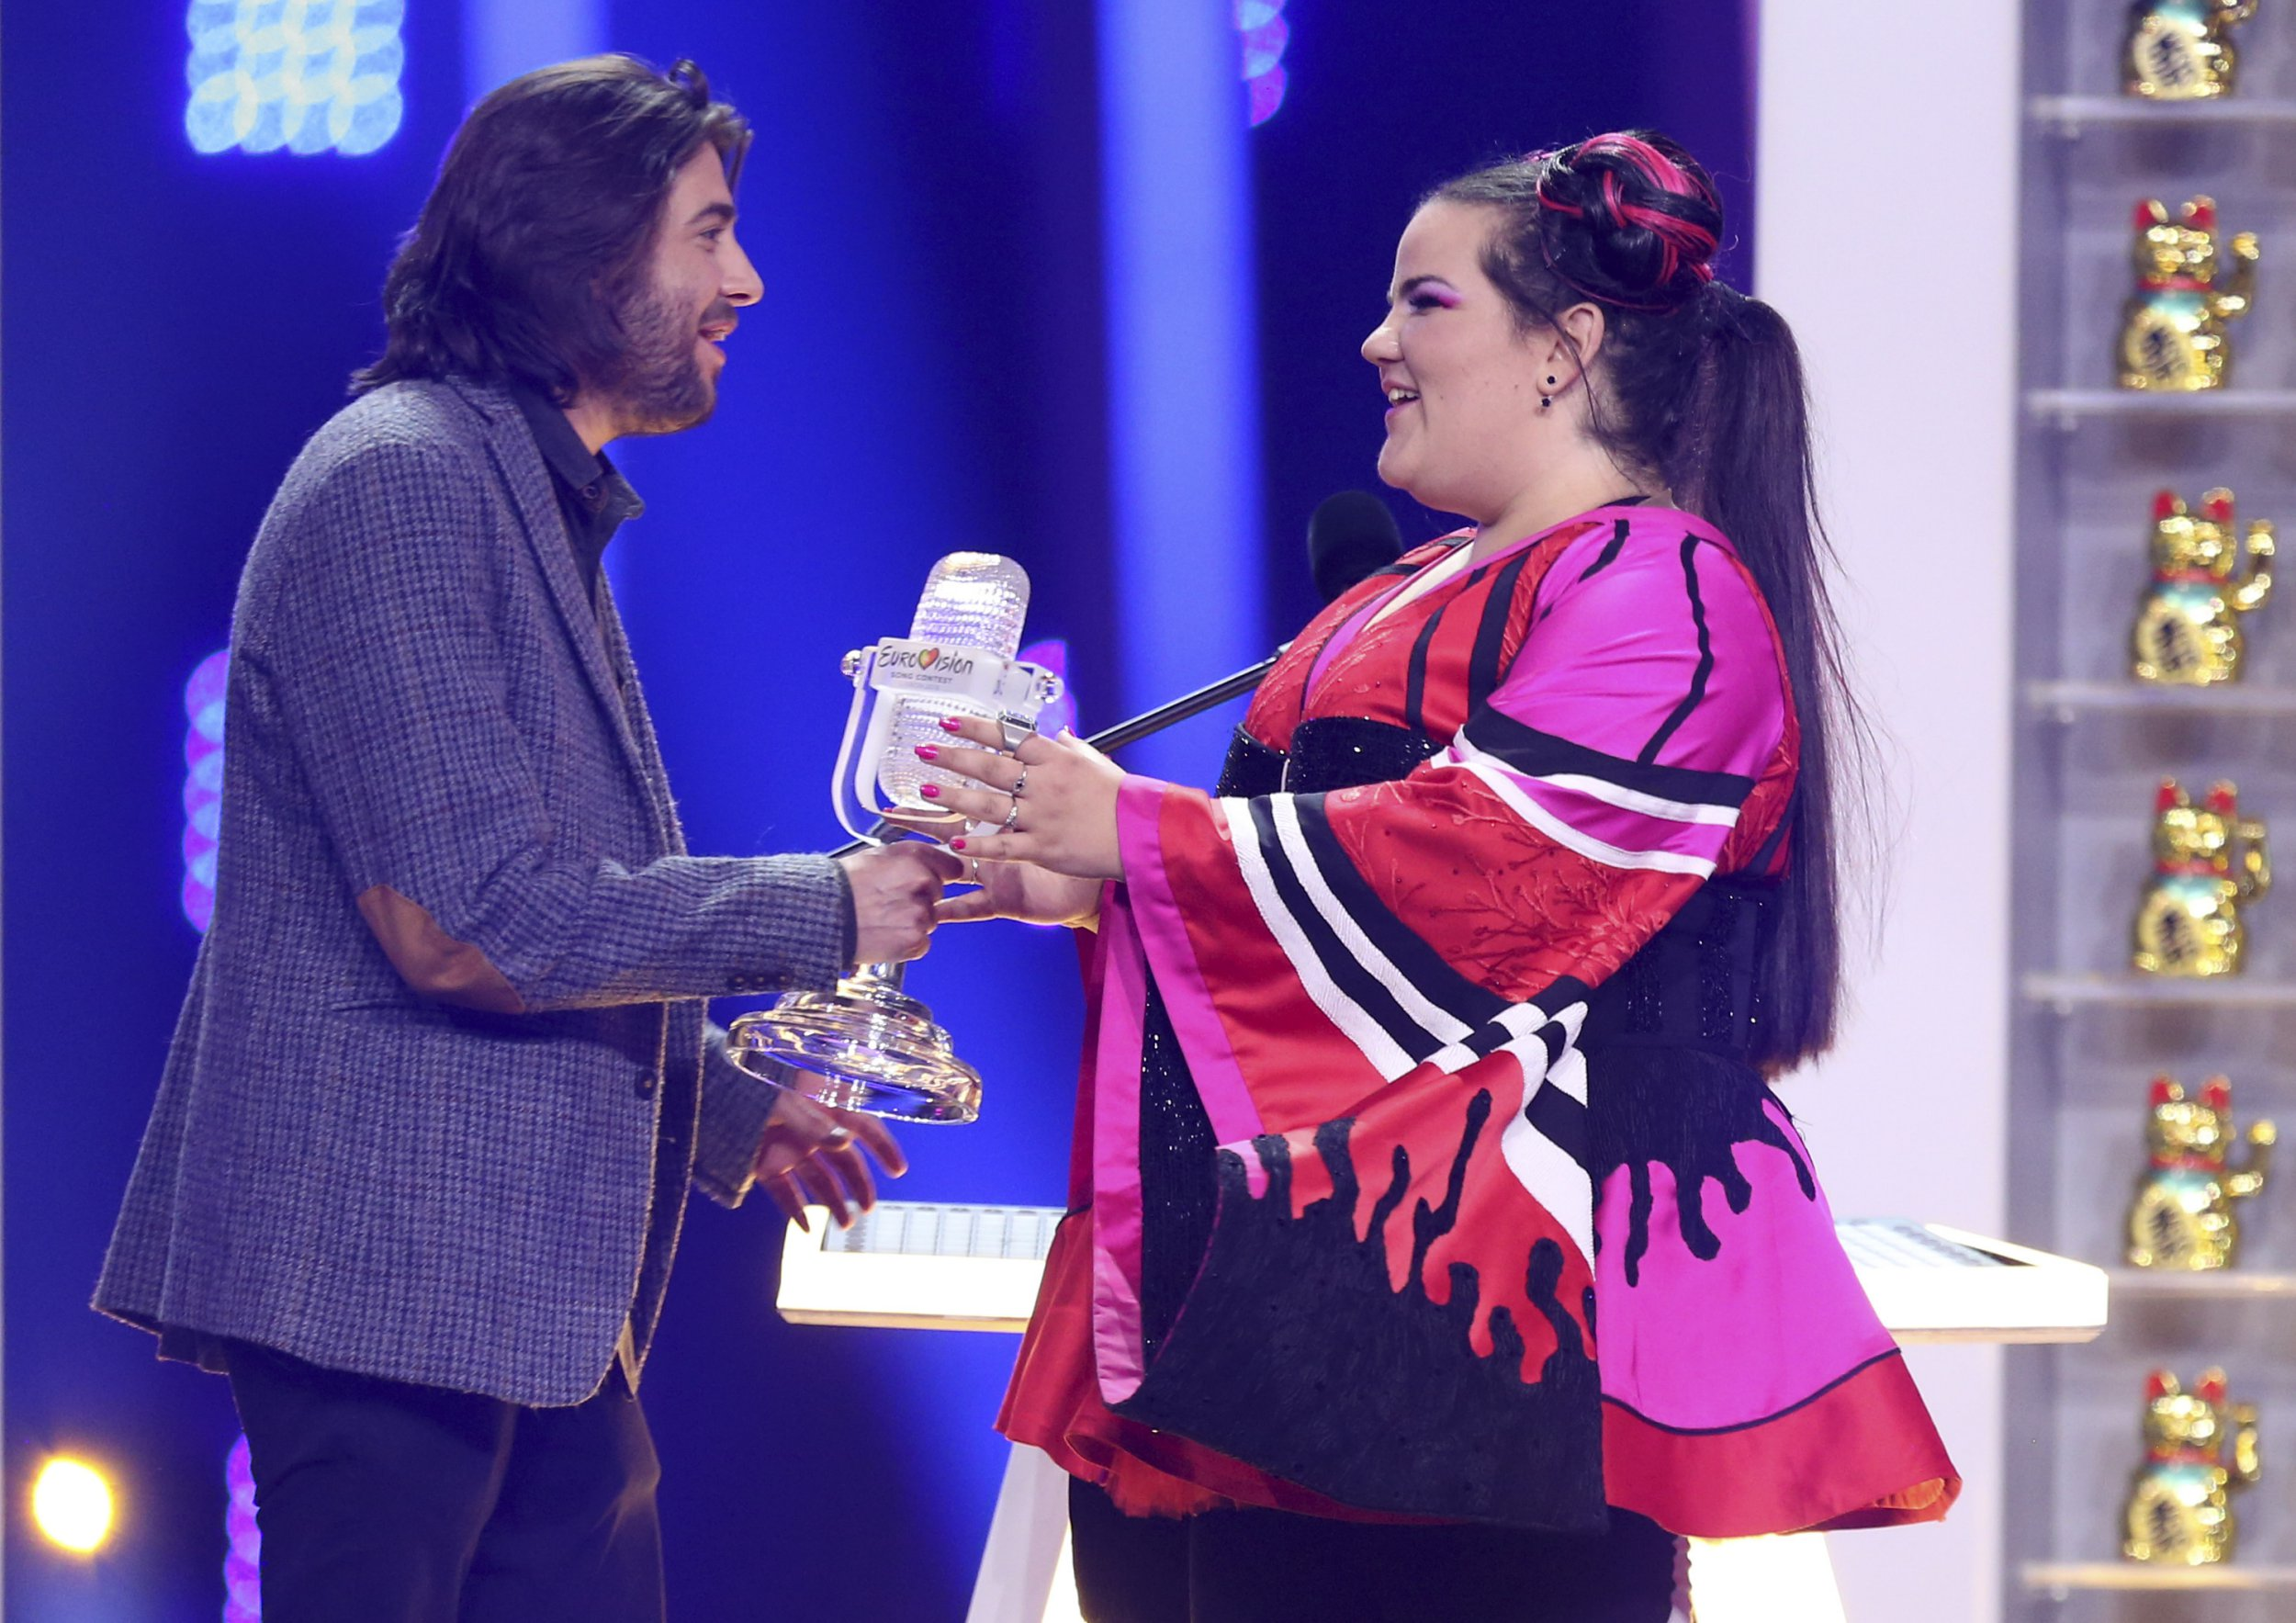 Netta from Israel, right, receives the trophy by Salvador Sobral after winning the Eurovision song contest in Lisbon, Portugal, Saturday, May 12, 2018 during the Eurovision Song Contest grand final. (AP Photo/Armando Franca)